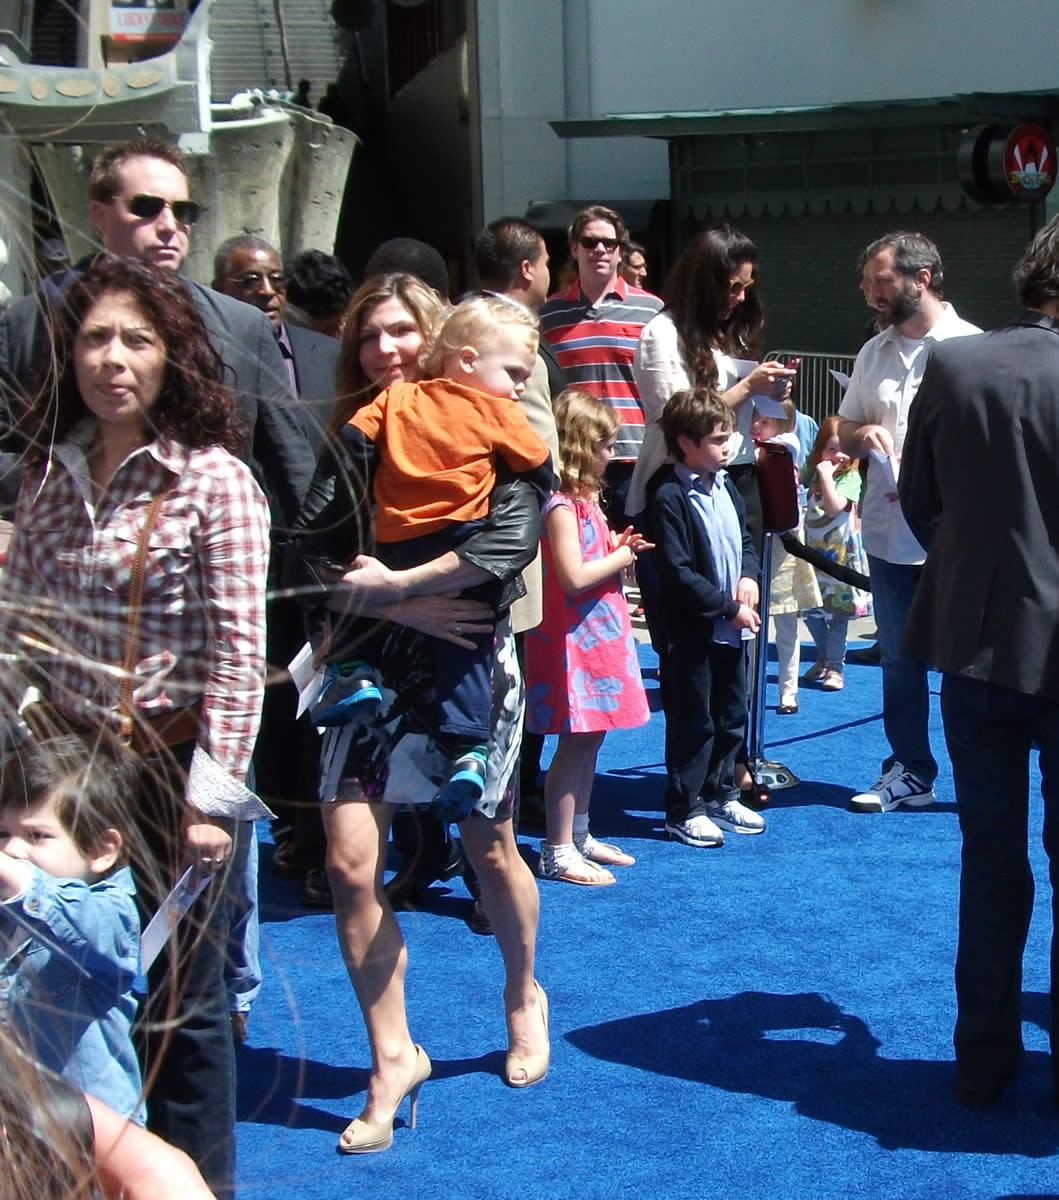 Families at Rio, including Leslie Mann's